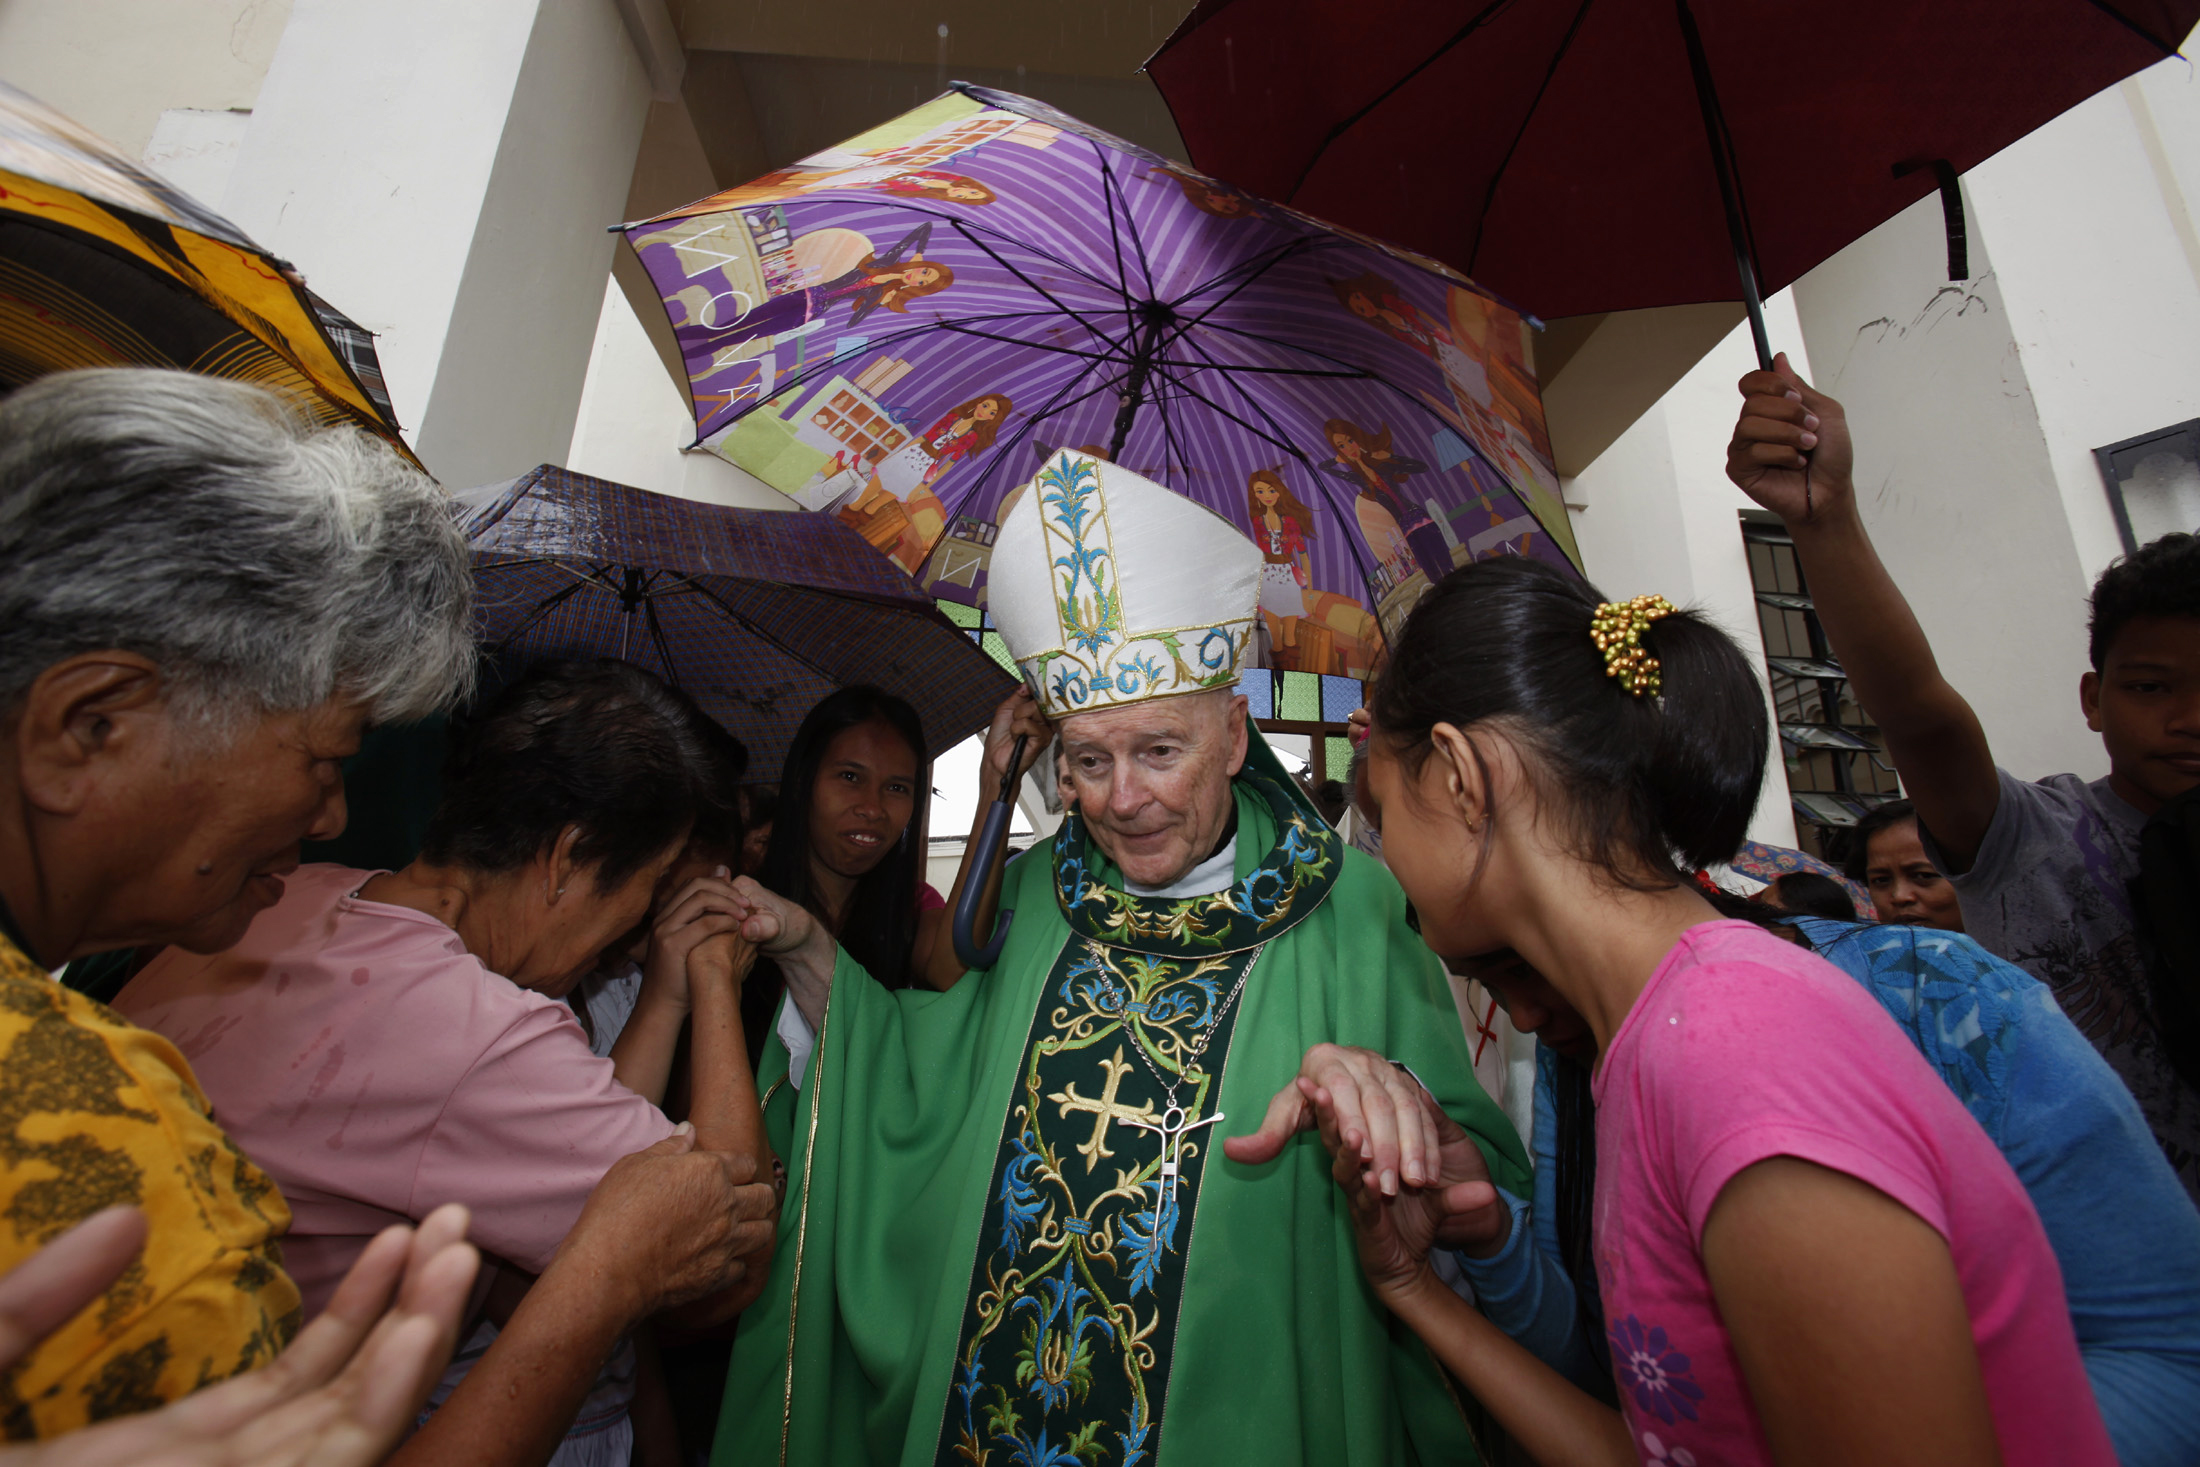 People greet Cardinal Theodore E. McCarrick, President of the Catholic Relief Services based in Washington, outside Transfiguration Cathedral, which was damaged during super Typhoon Haiyan, in Palo, south of Tacloban, November 17, 2013. Long-delayed emergency supplies flowed into the typhoon-ravaged central Philippines on Saturday, reaching desperate families who had to fend for themselves for days, as the United Nations more than doubled its estimate of homeless to nearly two million.   REUTERS/Bobby Yip (PHILIPPINES  - Tags: DISASTER RELIGION ENVIRONMENT)   - LR1E9BH0AF5BZ